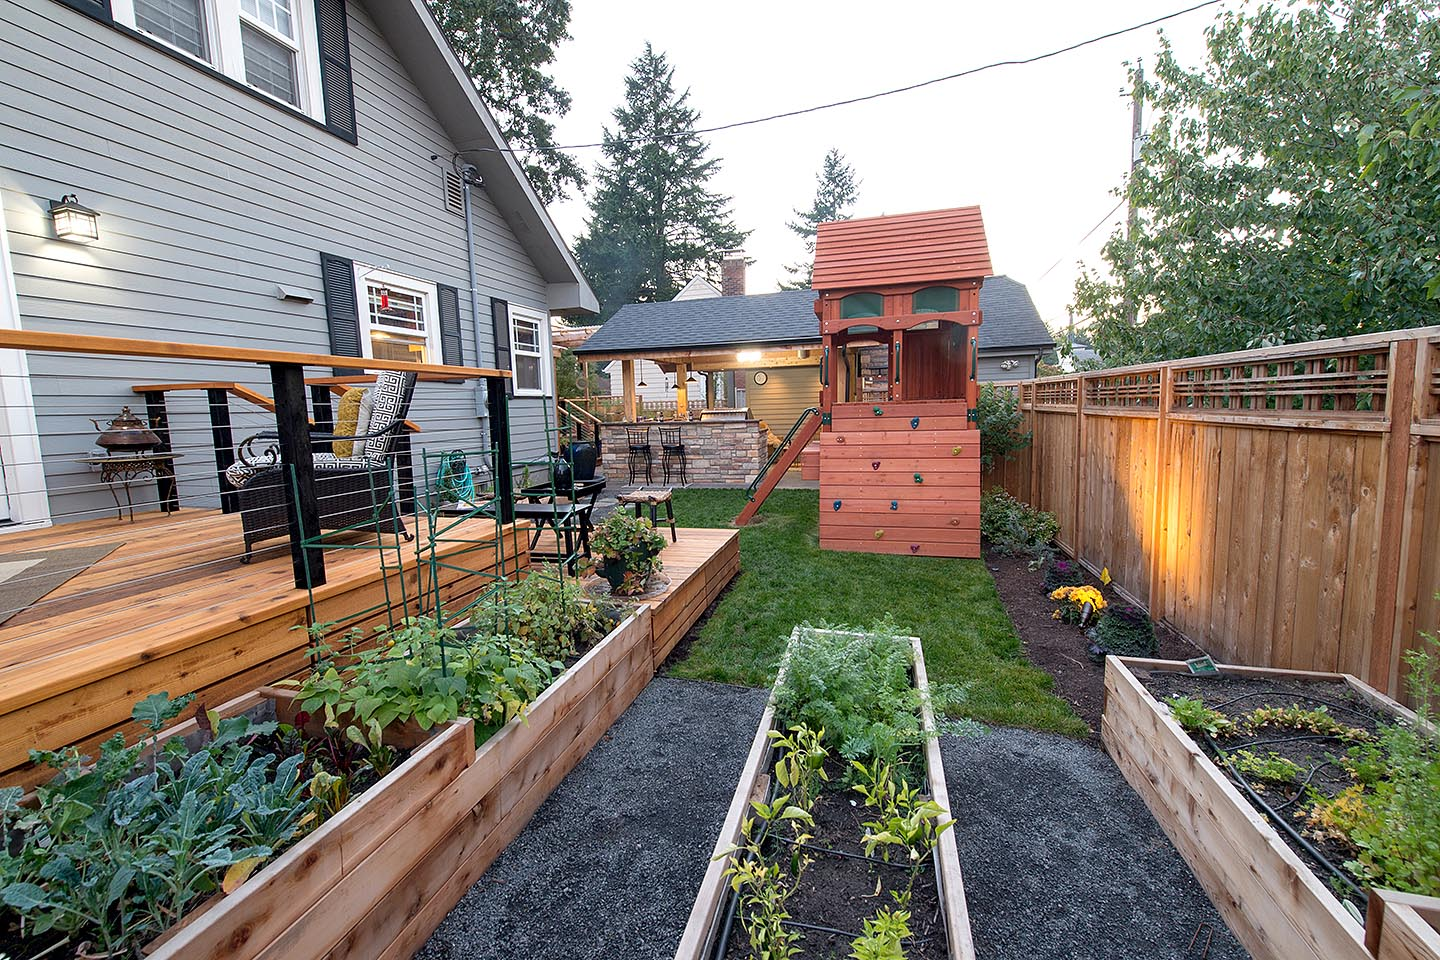 Raised Garden Beds in Landscapes